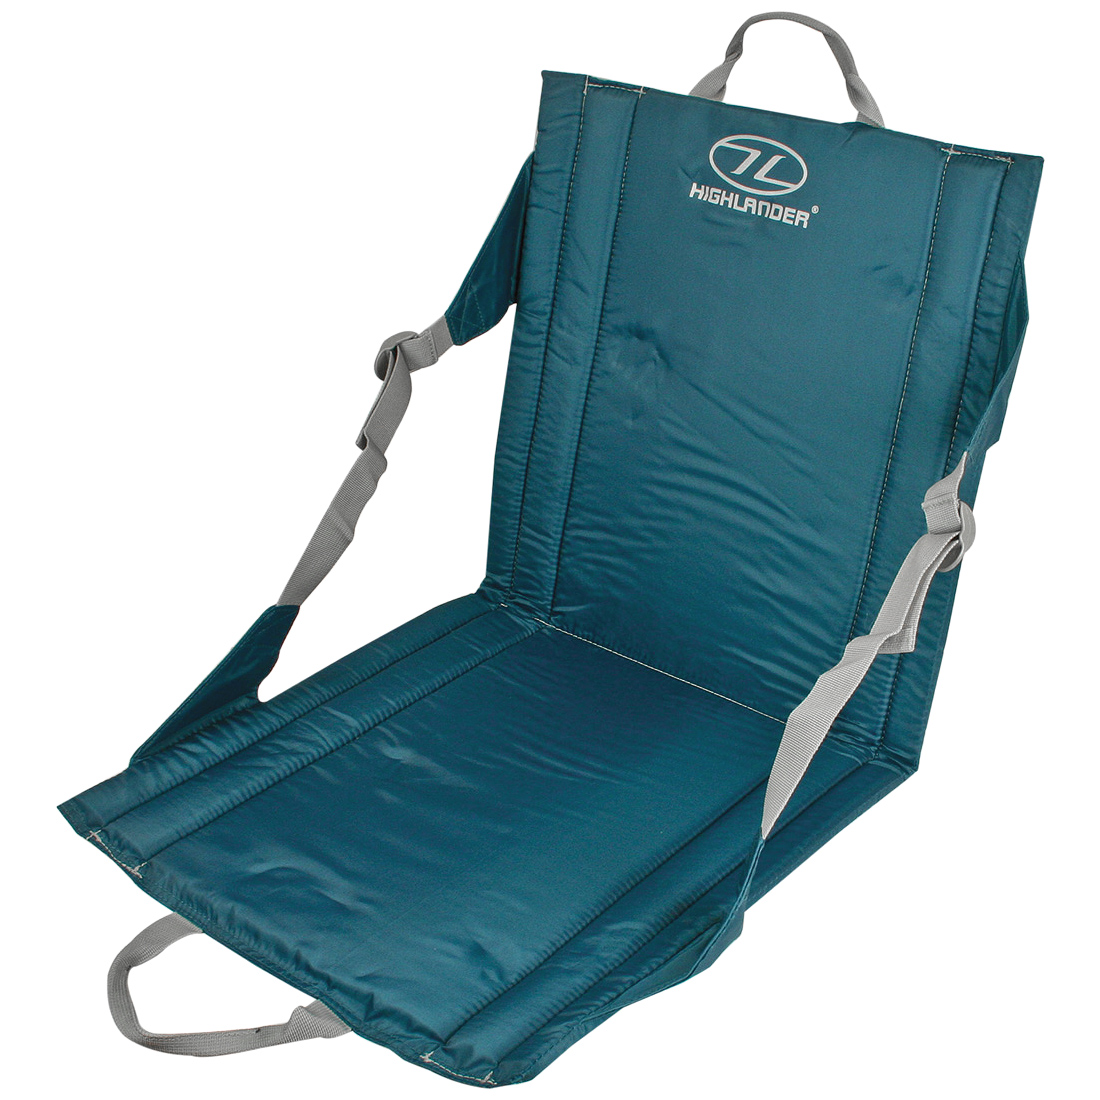 Highlander Portable Outdoor Seat Camping Relax Mat